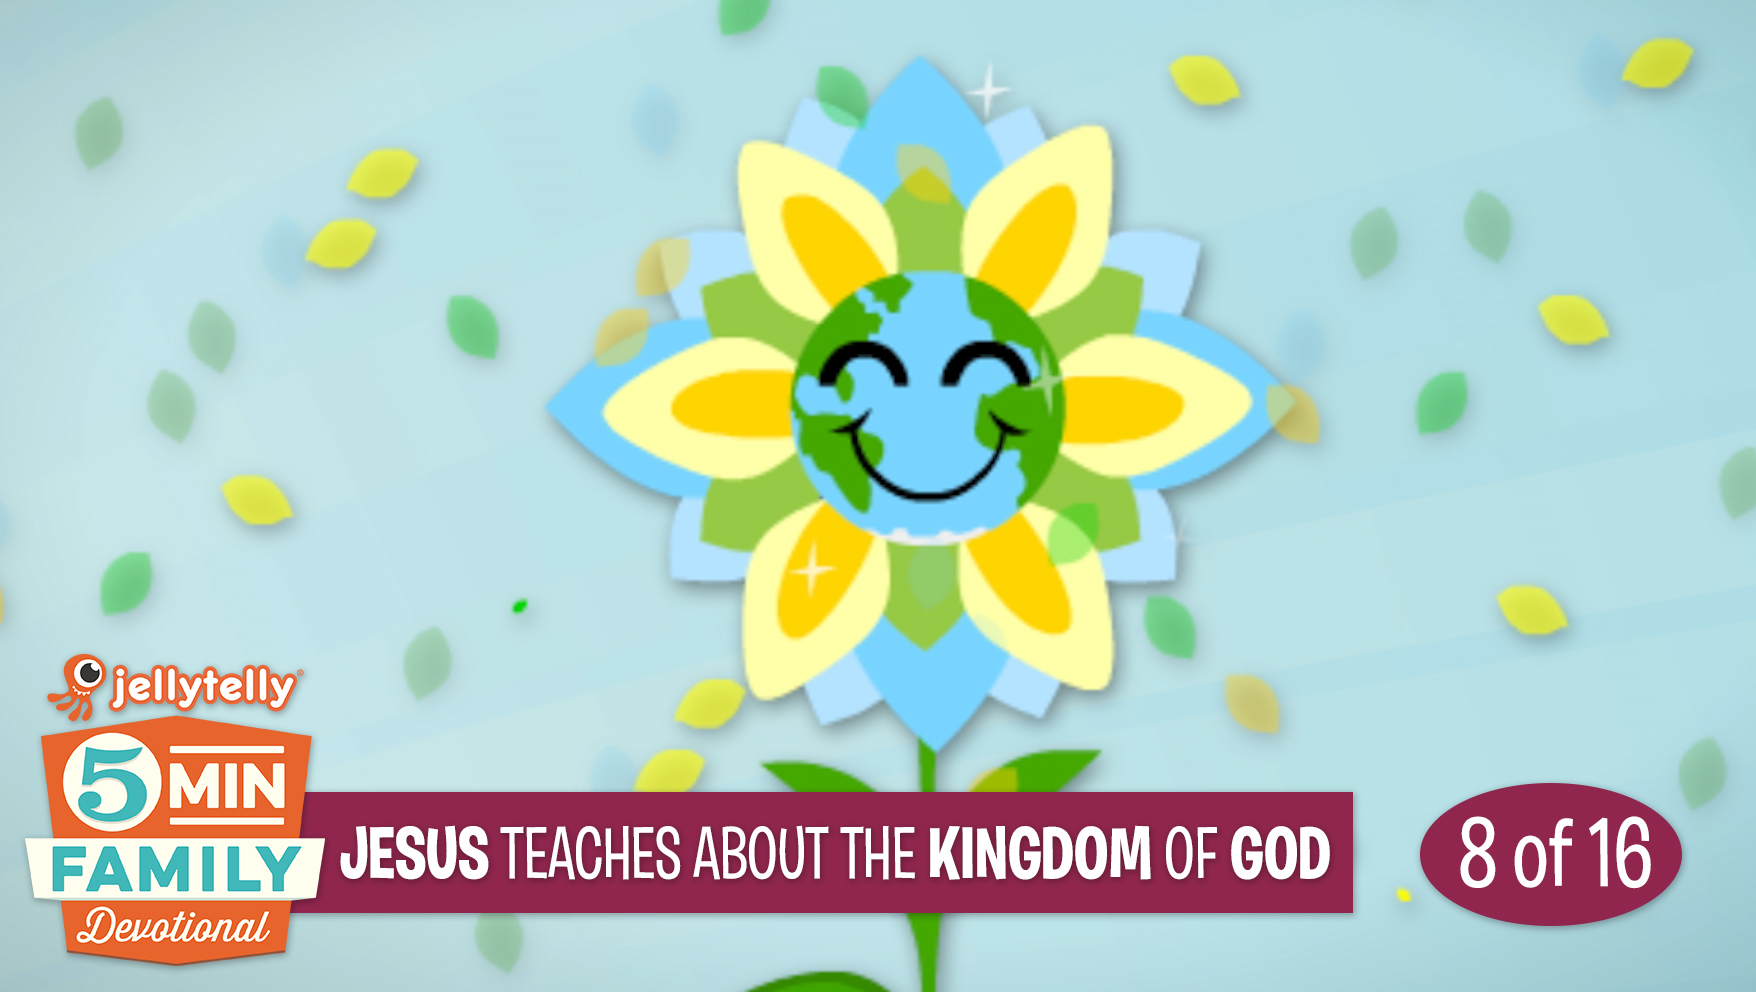 Jesus Teaches about the Kingdom of God - Jesus 5 Minute Family Devotional